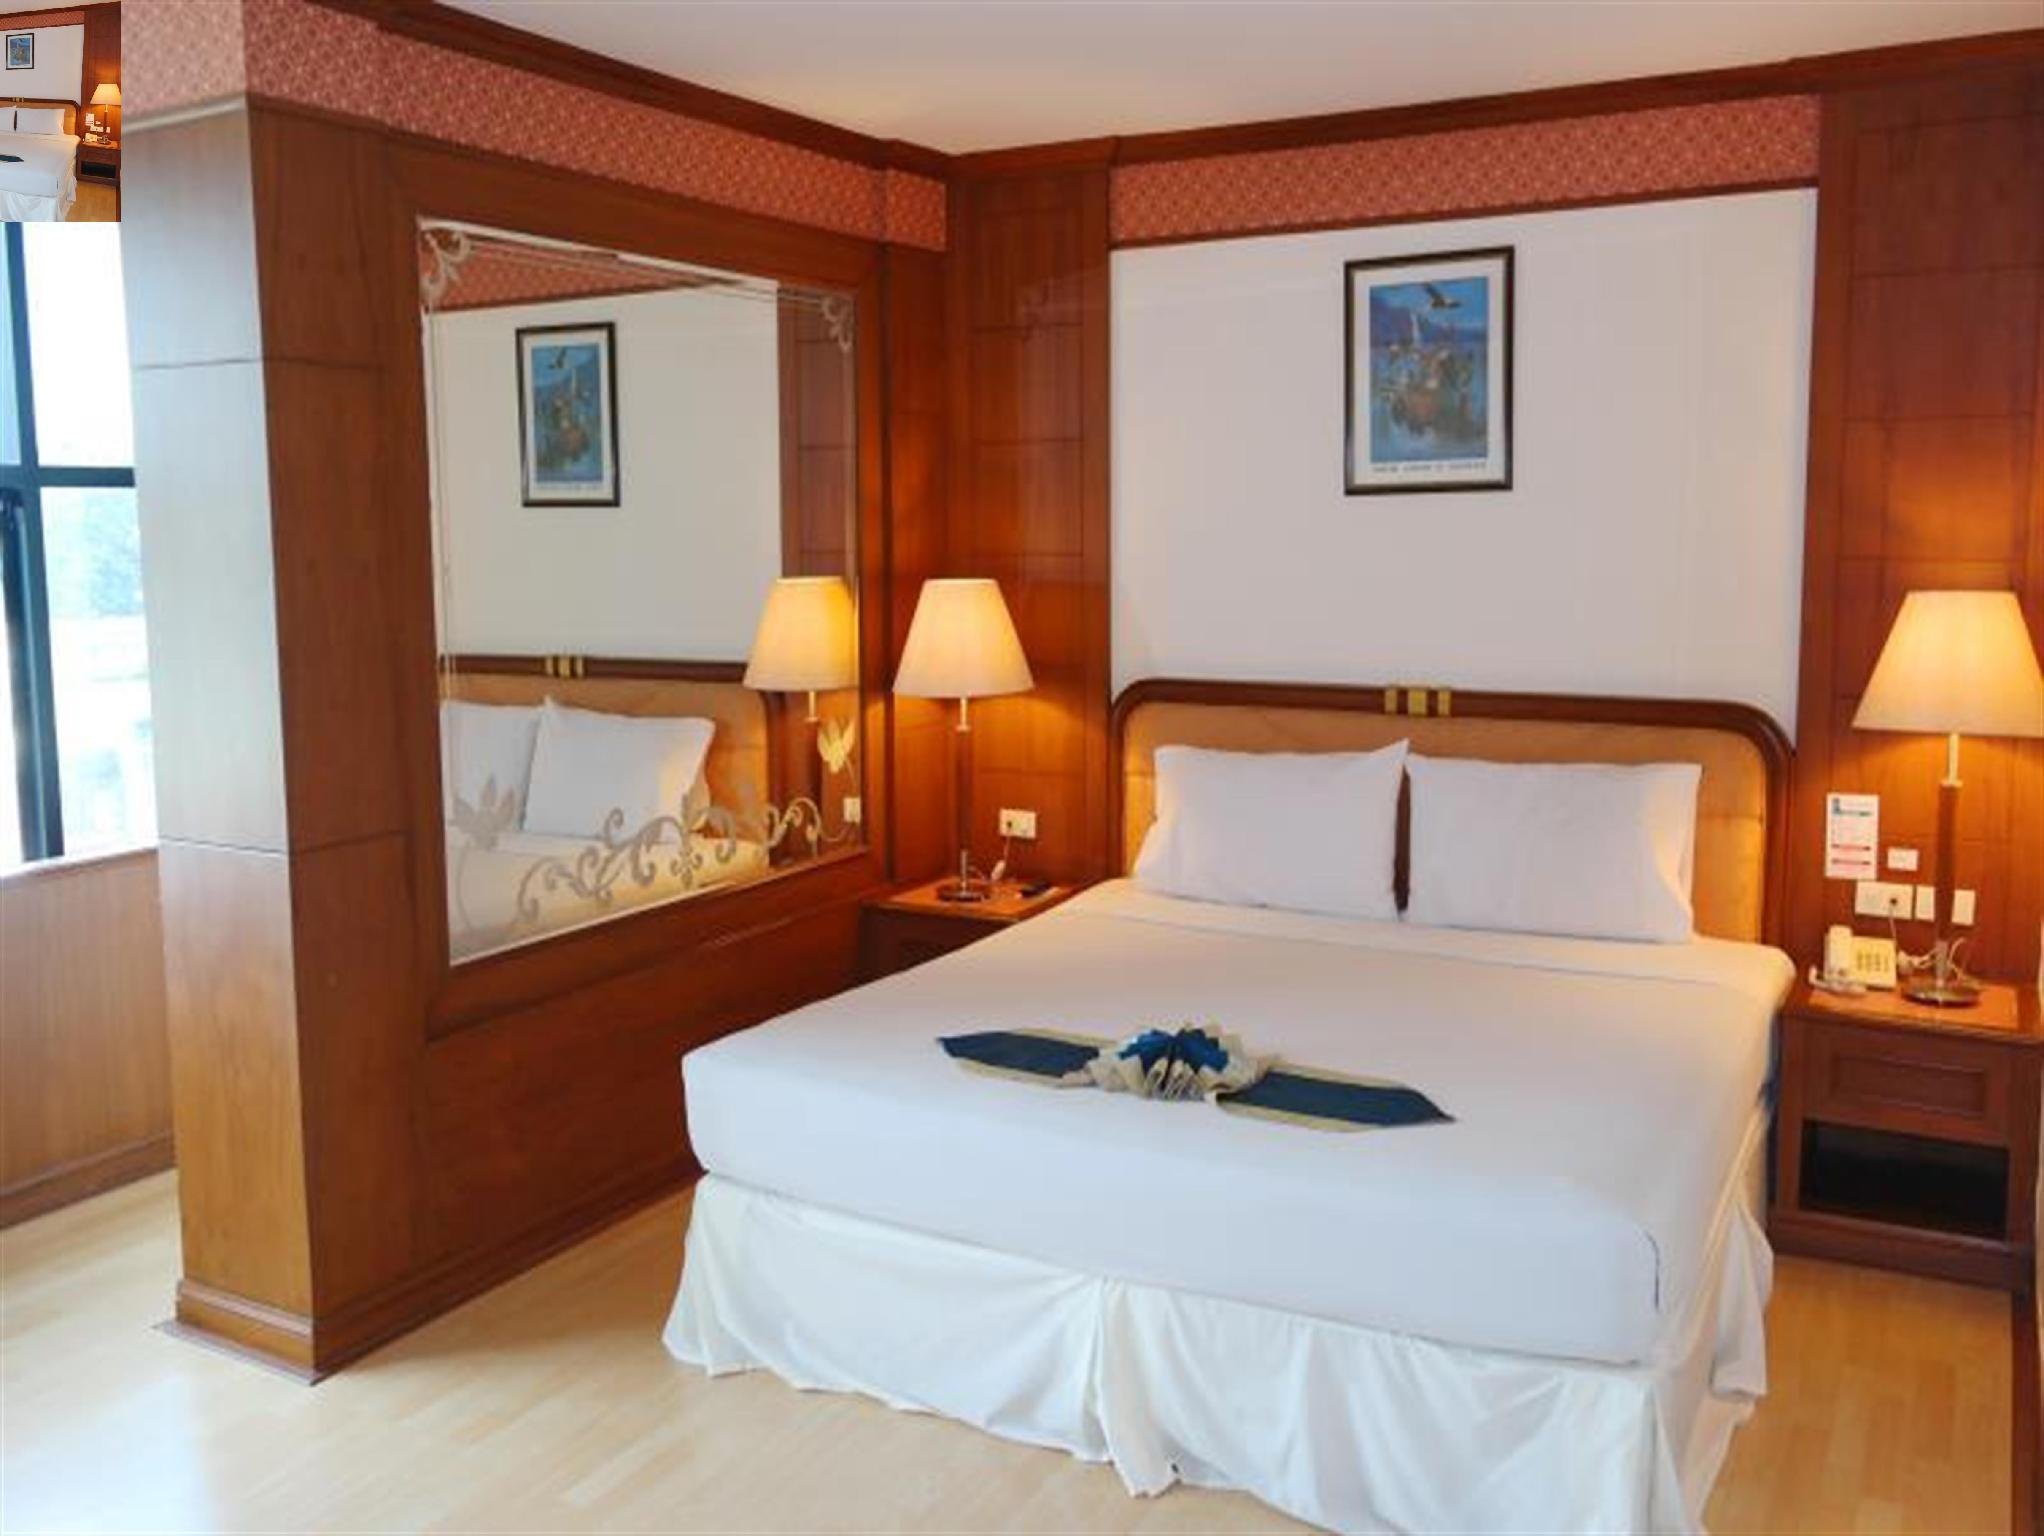 Juuniorsviit (Junior Suite Room)